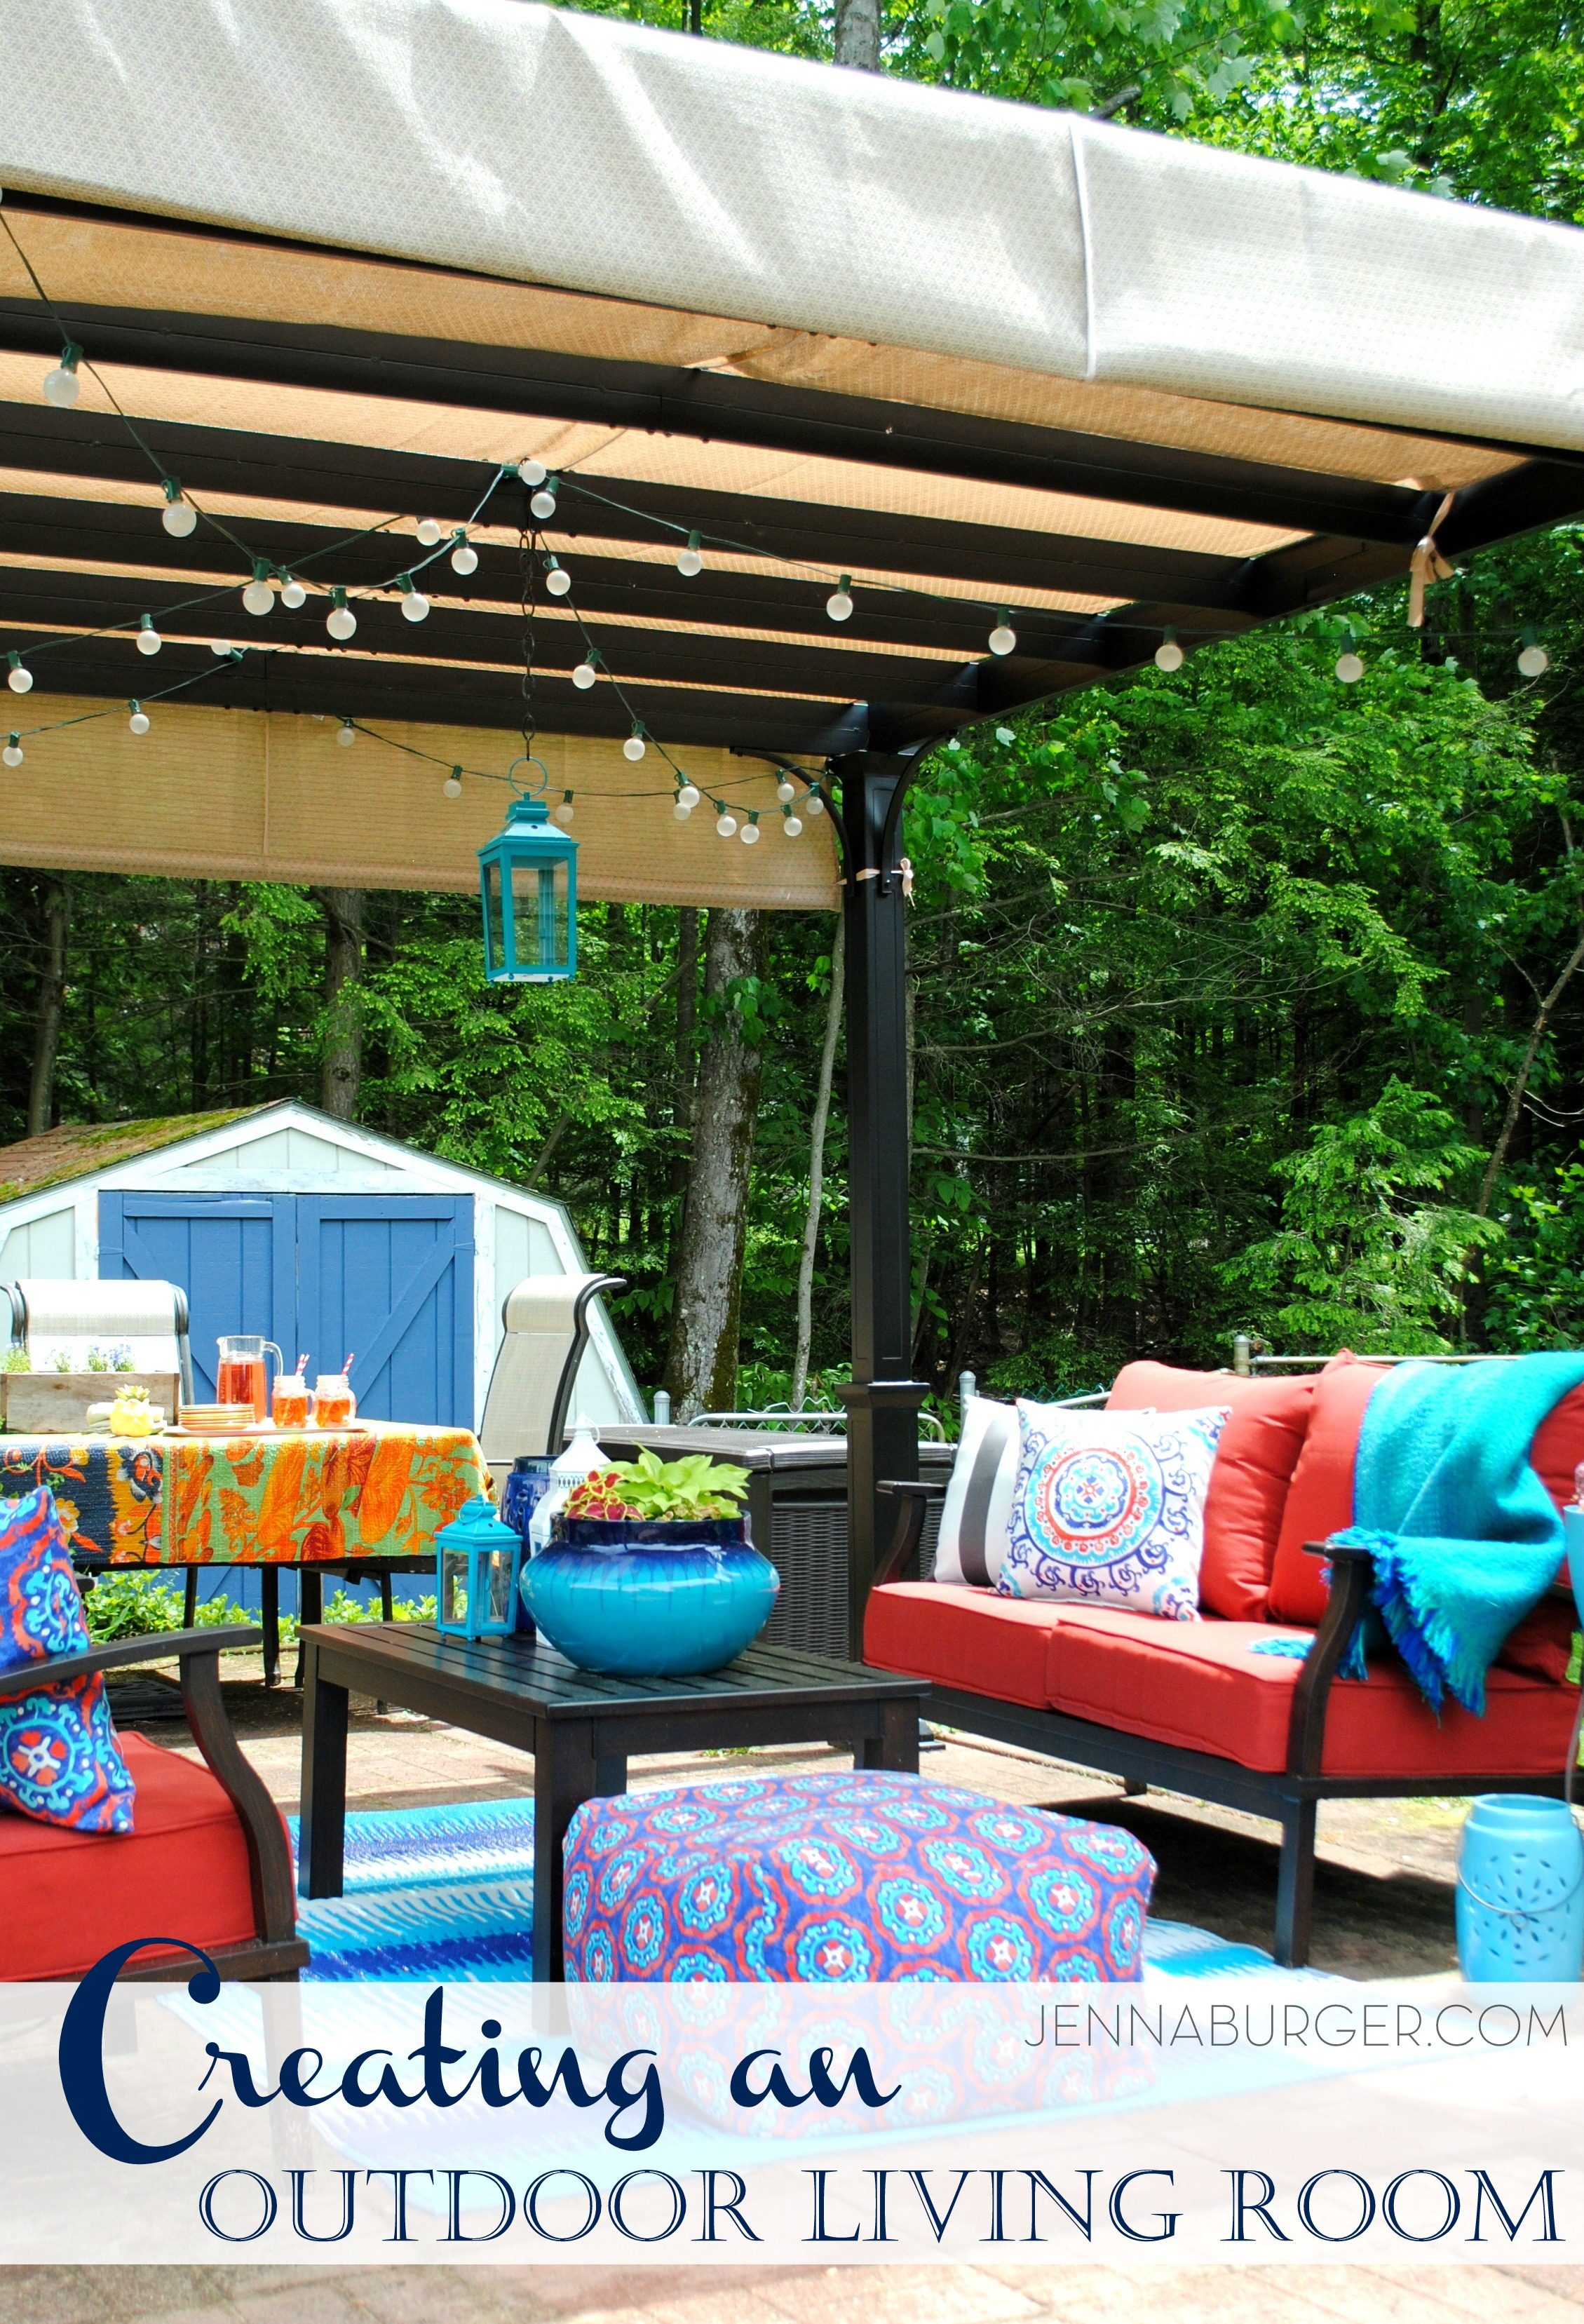 Helpful Budget Friendly Ideas To Create An Outdoor